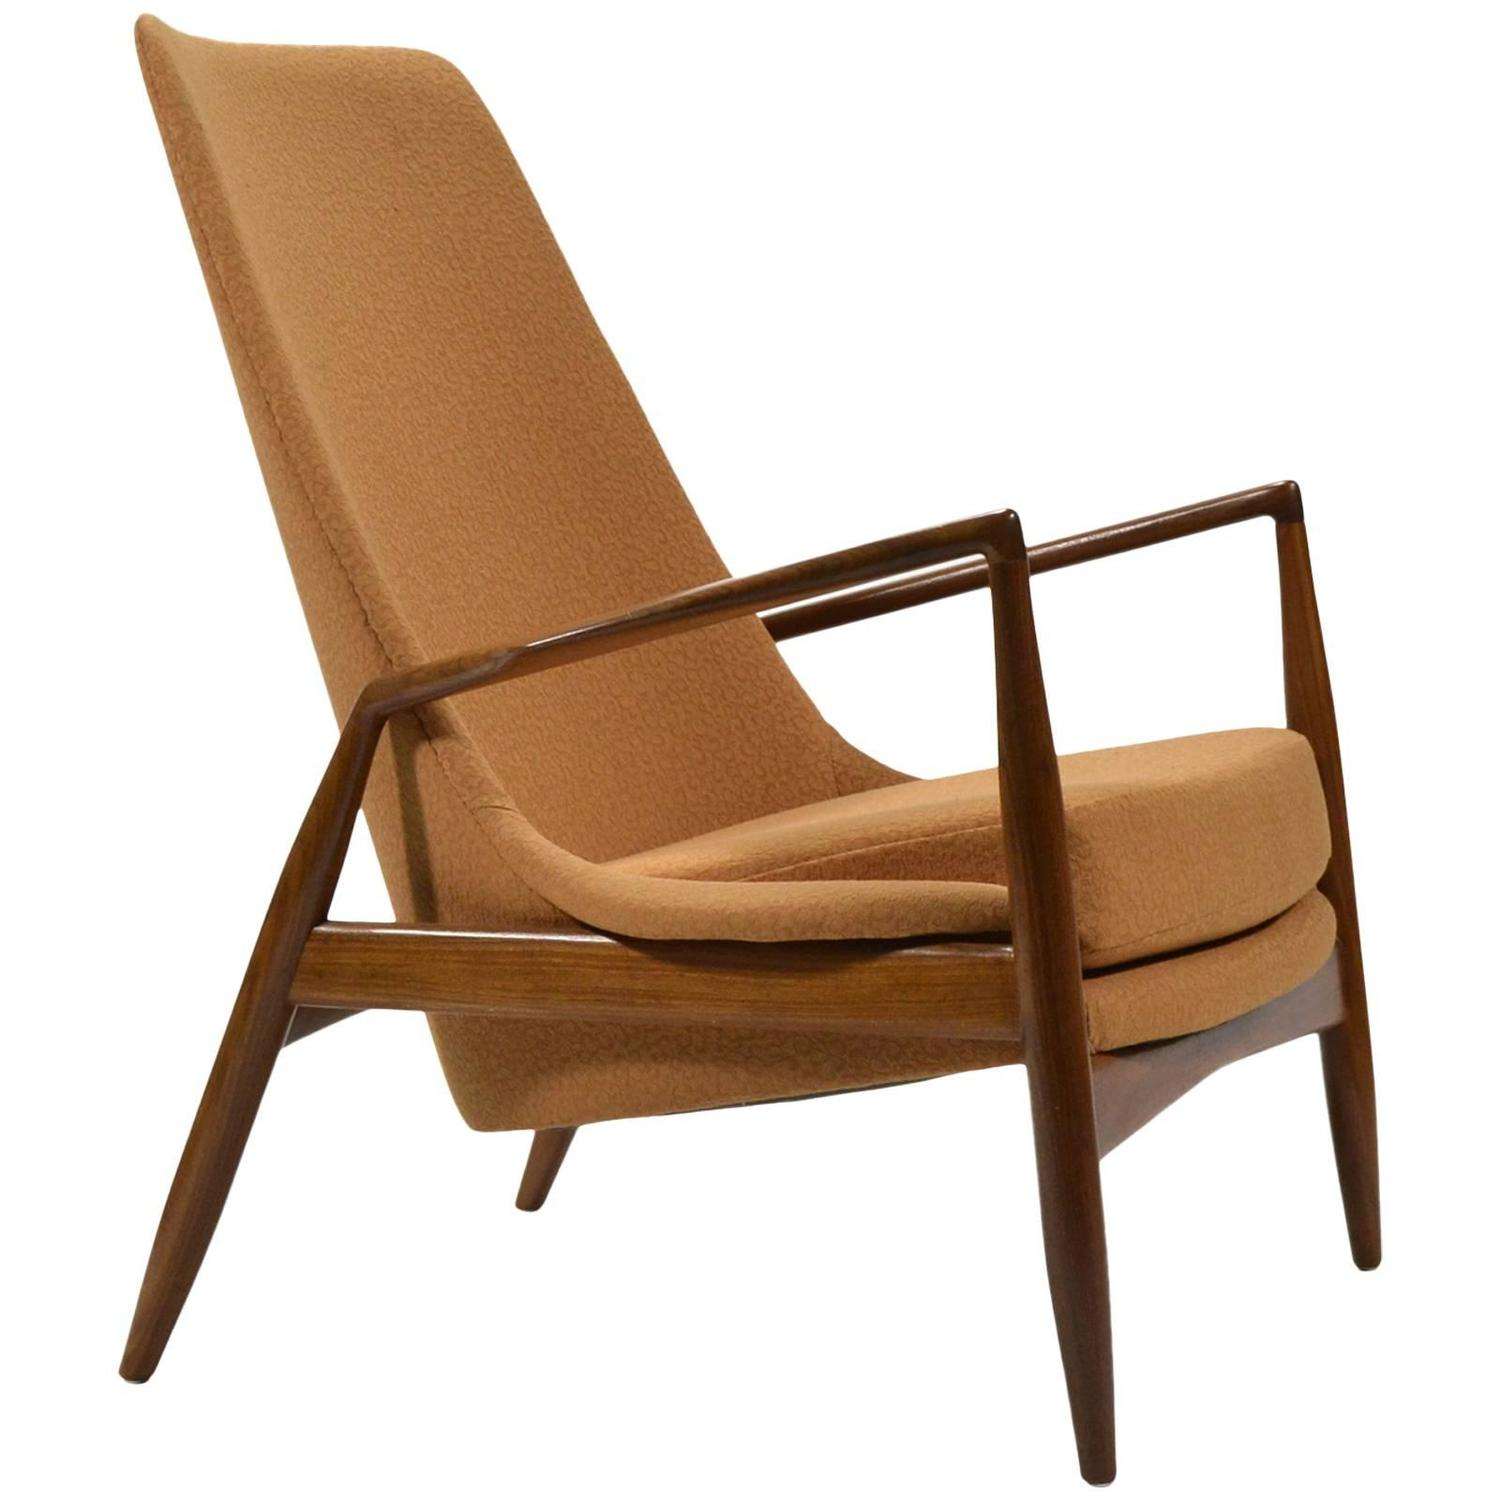 This sculptural pair of lounge chairs by ib kofod larsen is no longer - Ib Kofod Larsen High Back Seal Chair